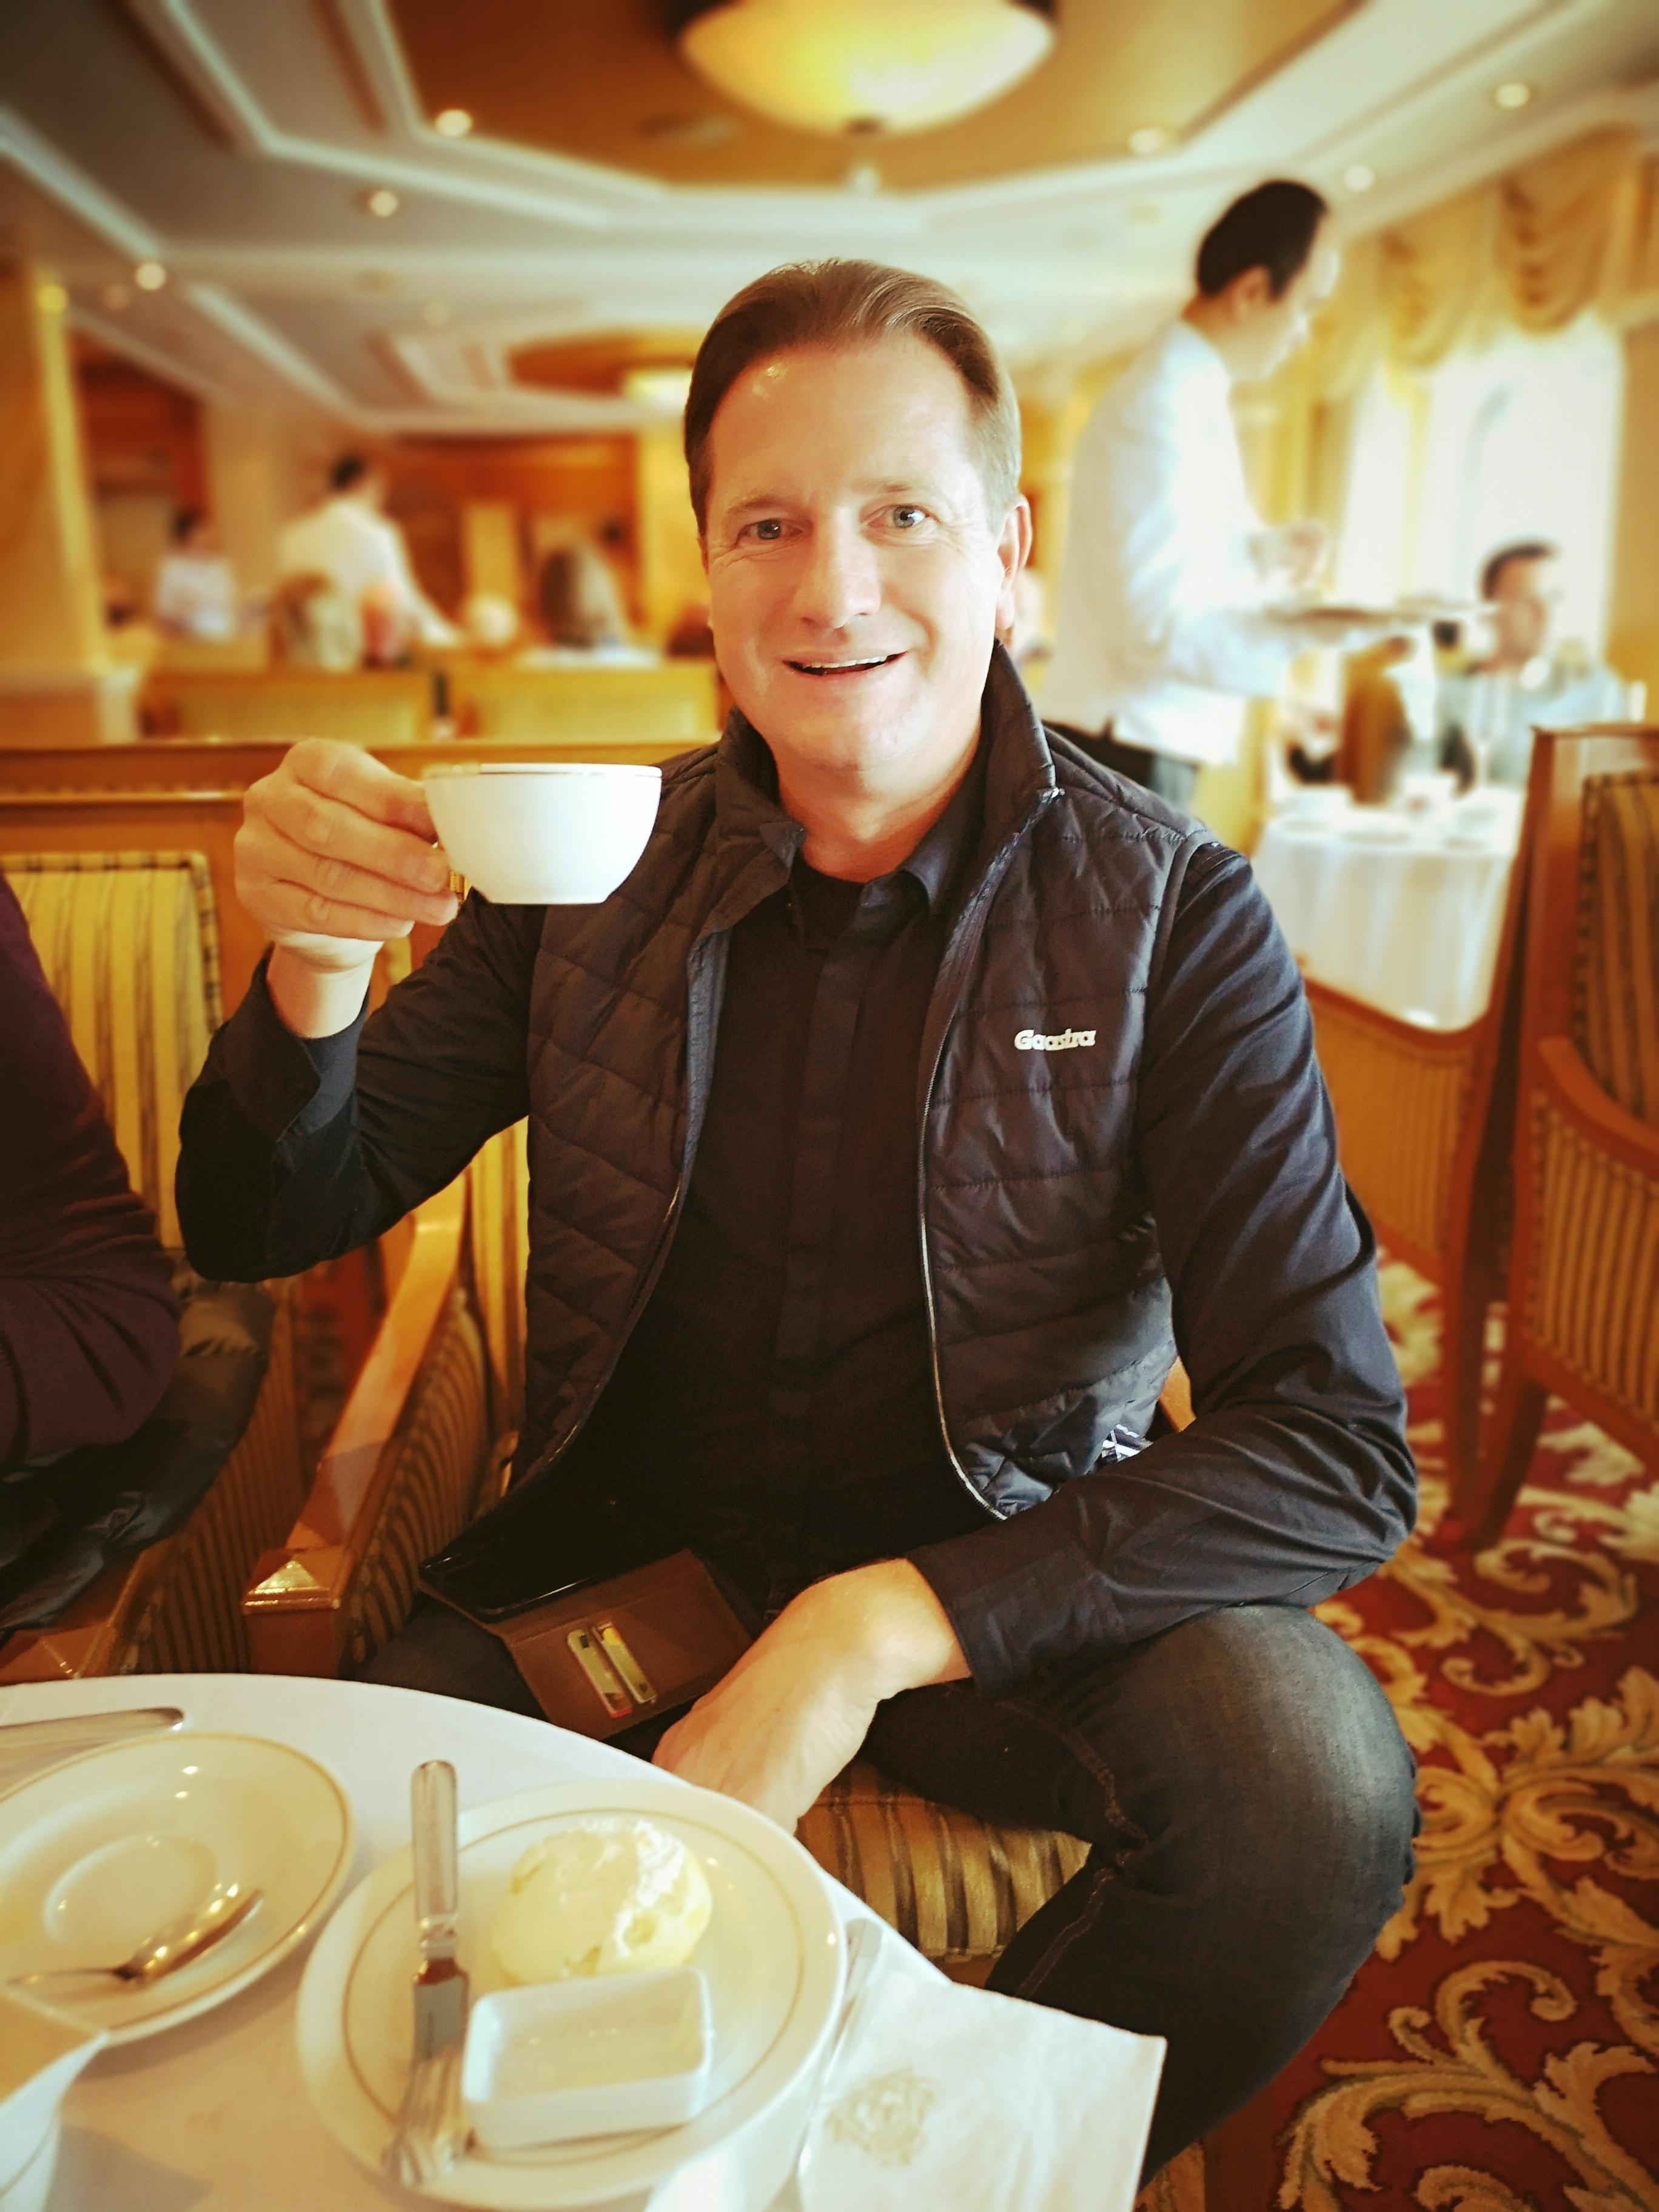 Luxuskreuzfahrt Experte Michael Seibert bei der Tea Time an Bord der Queen Victoria